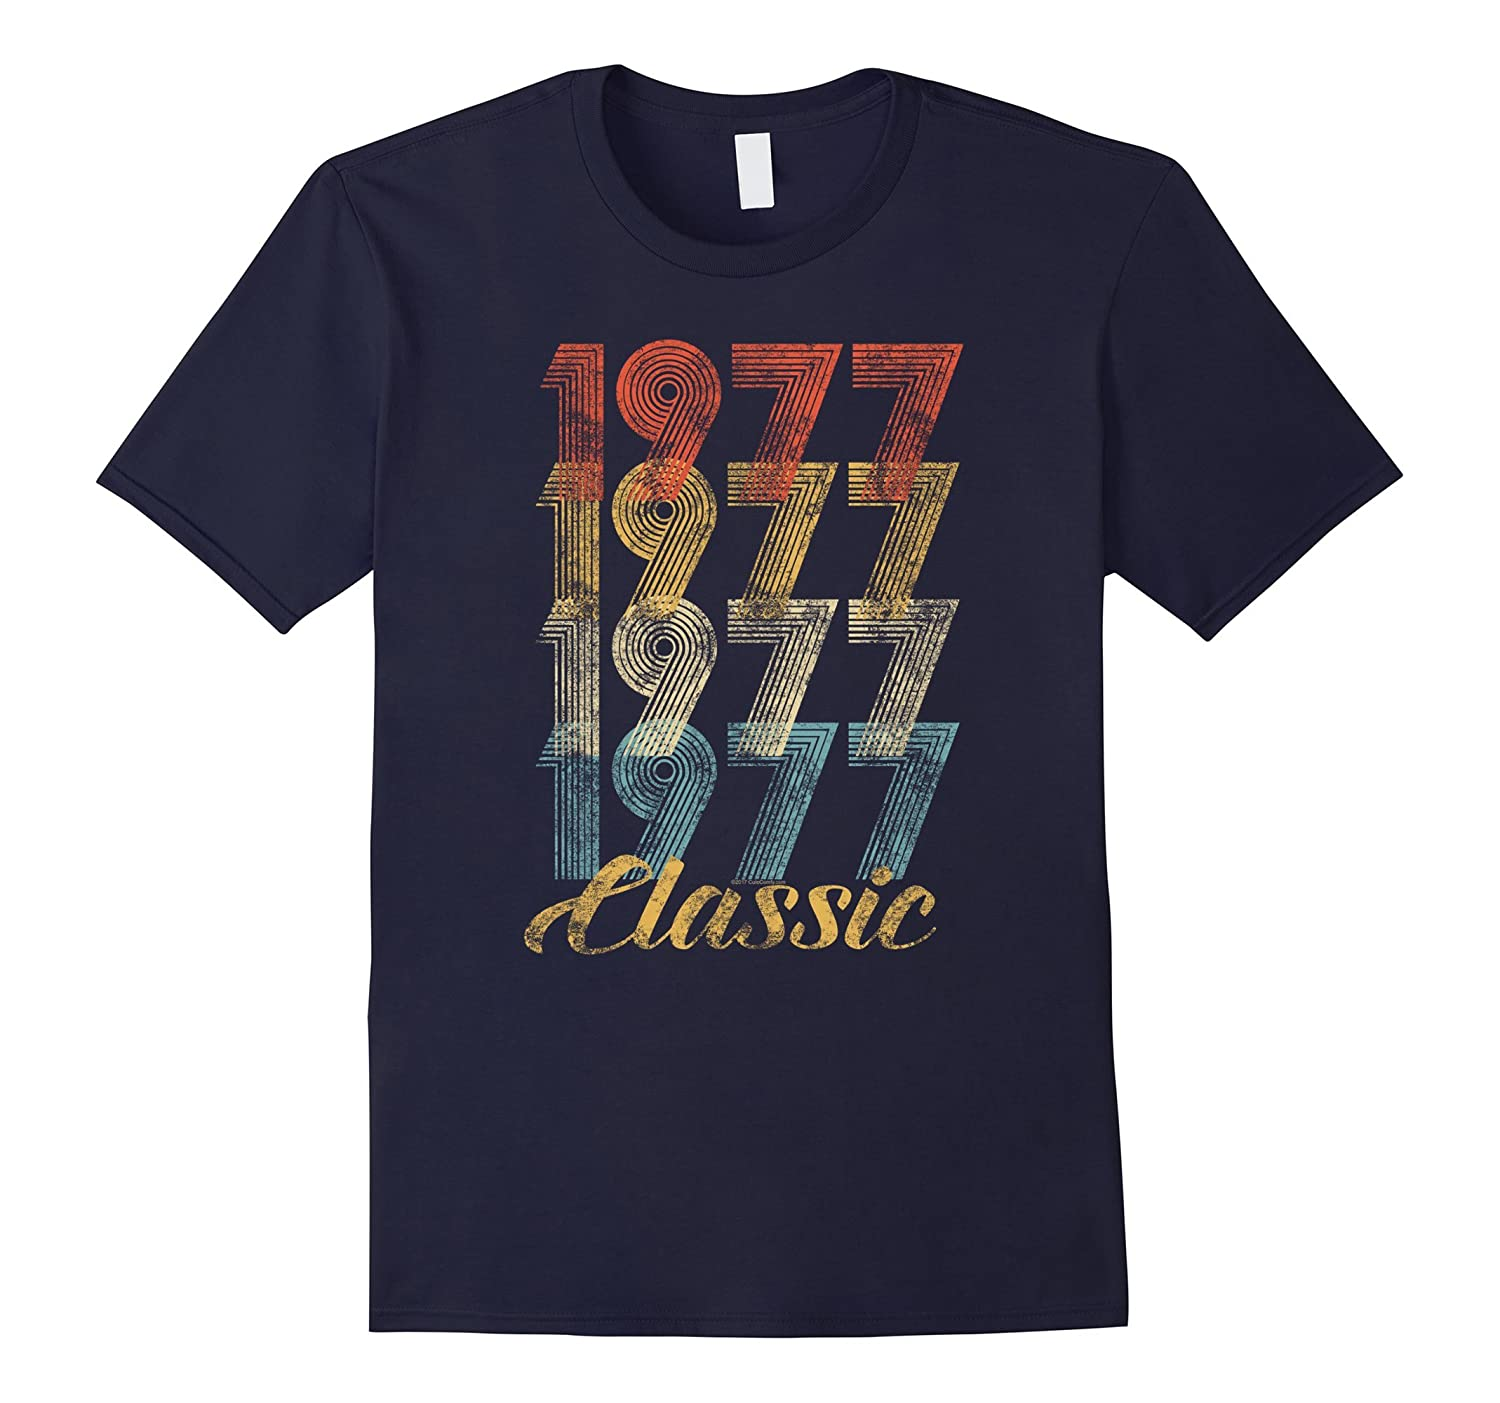 40th Birthday Gift Vintage 1977 T-Shirt for Men & Women-FL